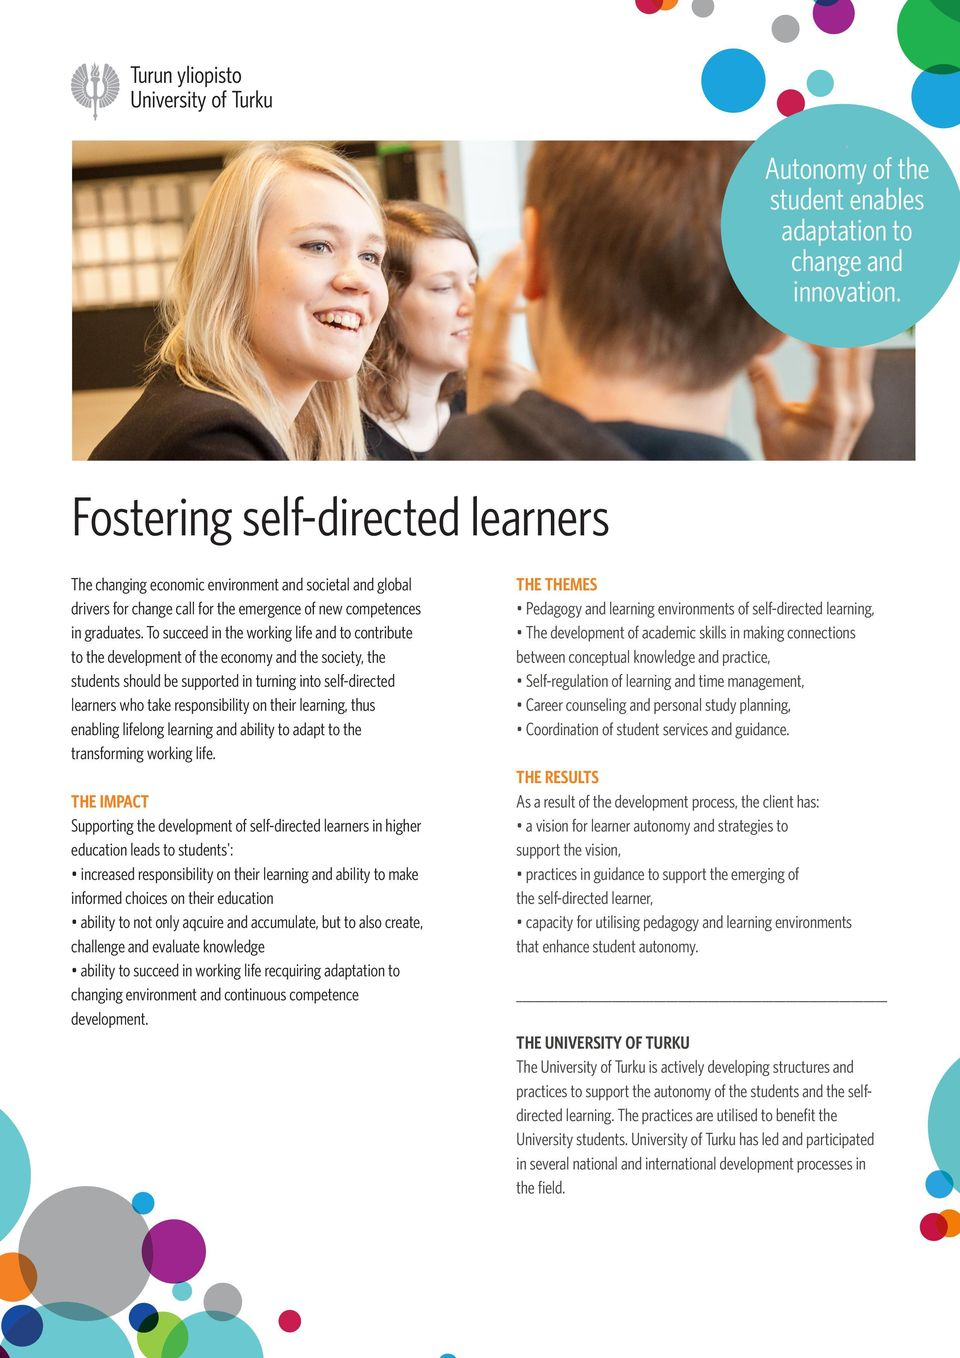 self-directed learners who take responsibility on their learning, thus enabling lifelong learning and ability to adapt to the transforming working life Supporting the development of self-directed